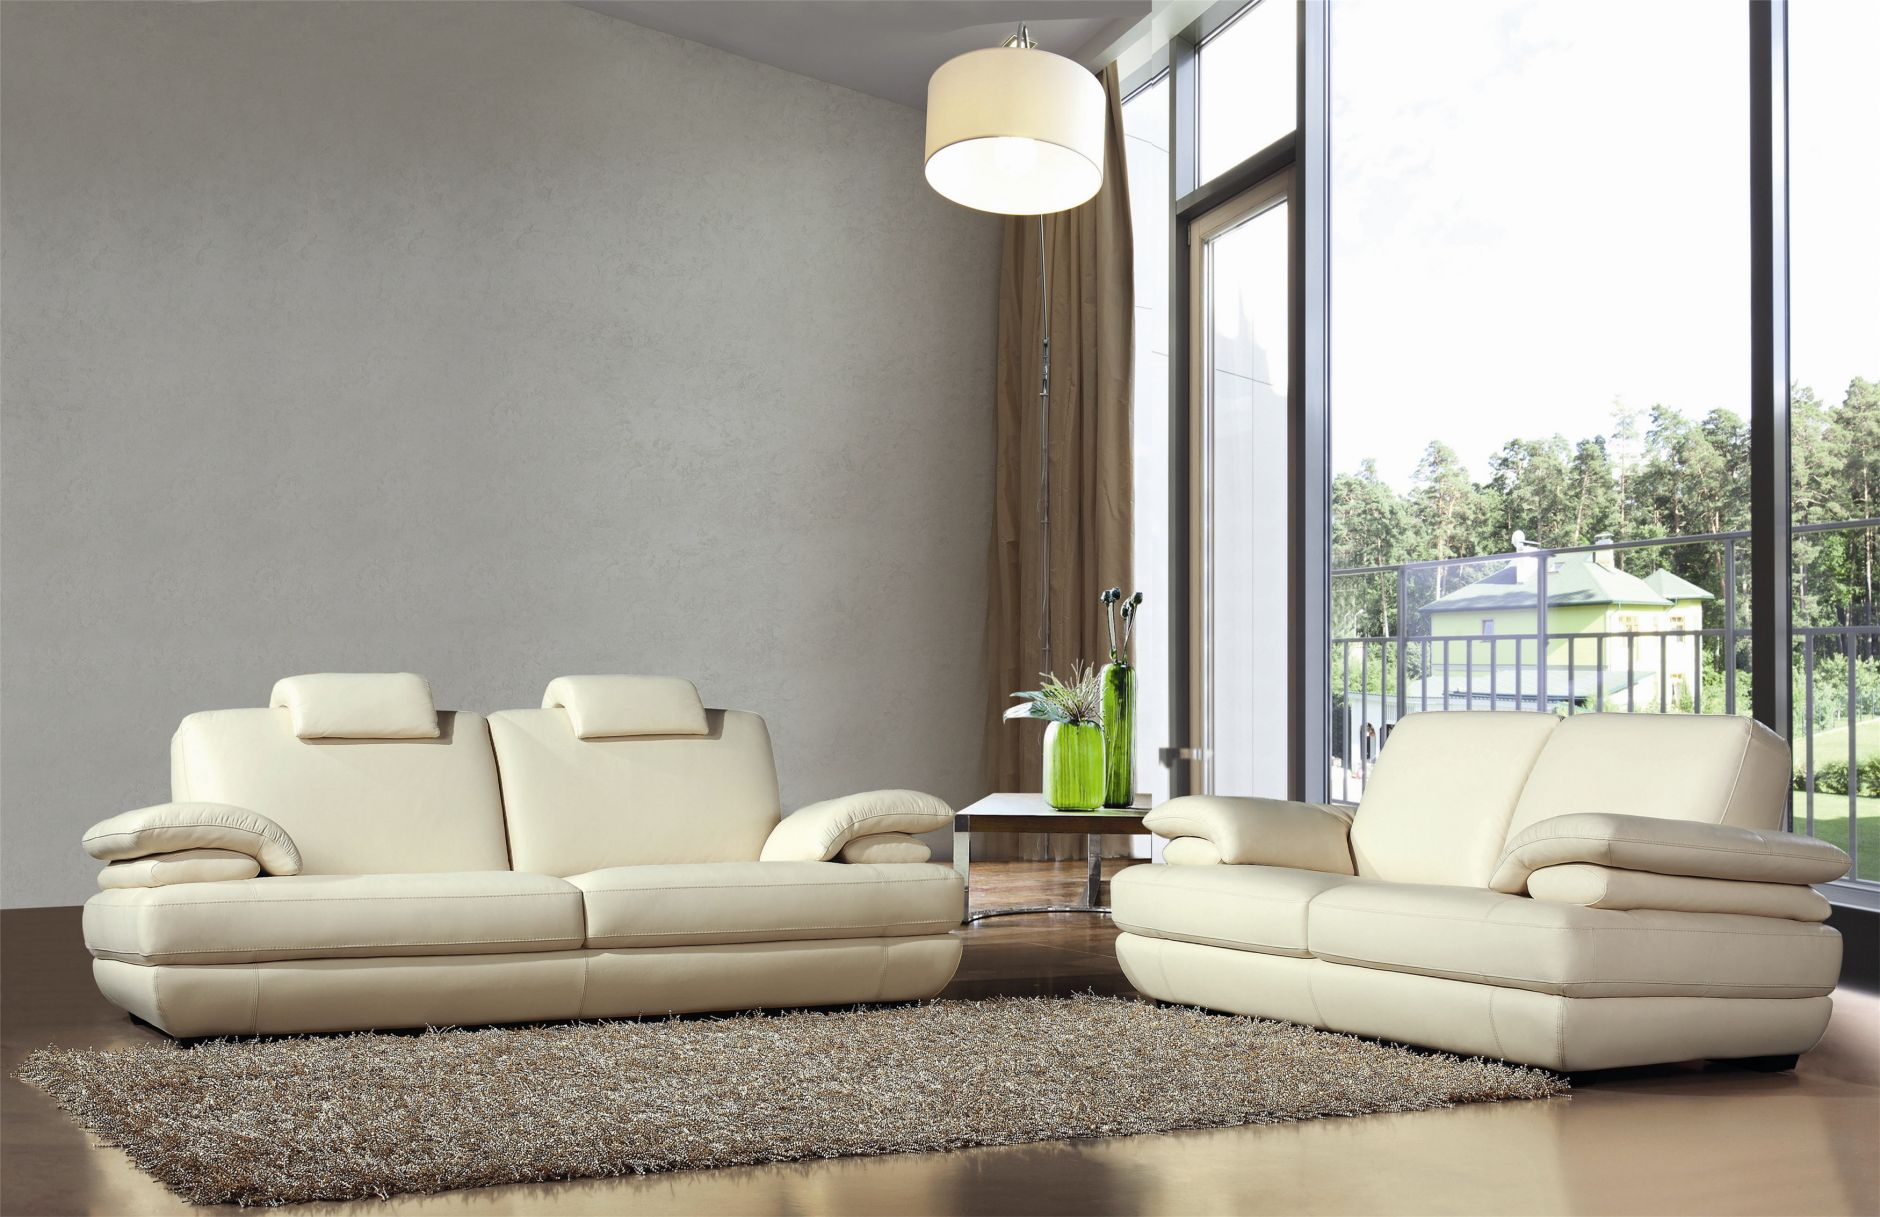 polsterm bel sofas 091die m bel aus italien. Black Bedroom Furniture Sets. Home Design Ideas